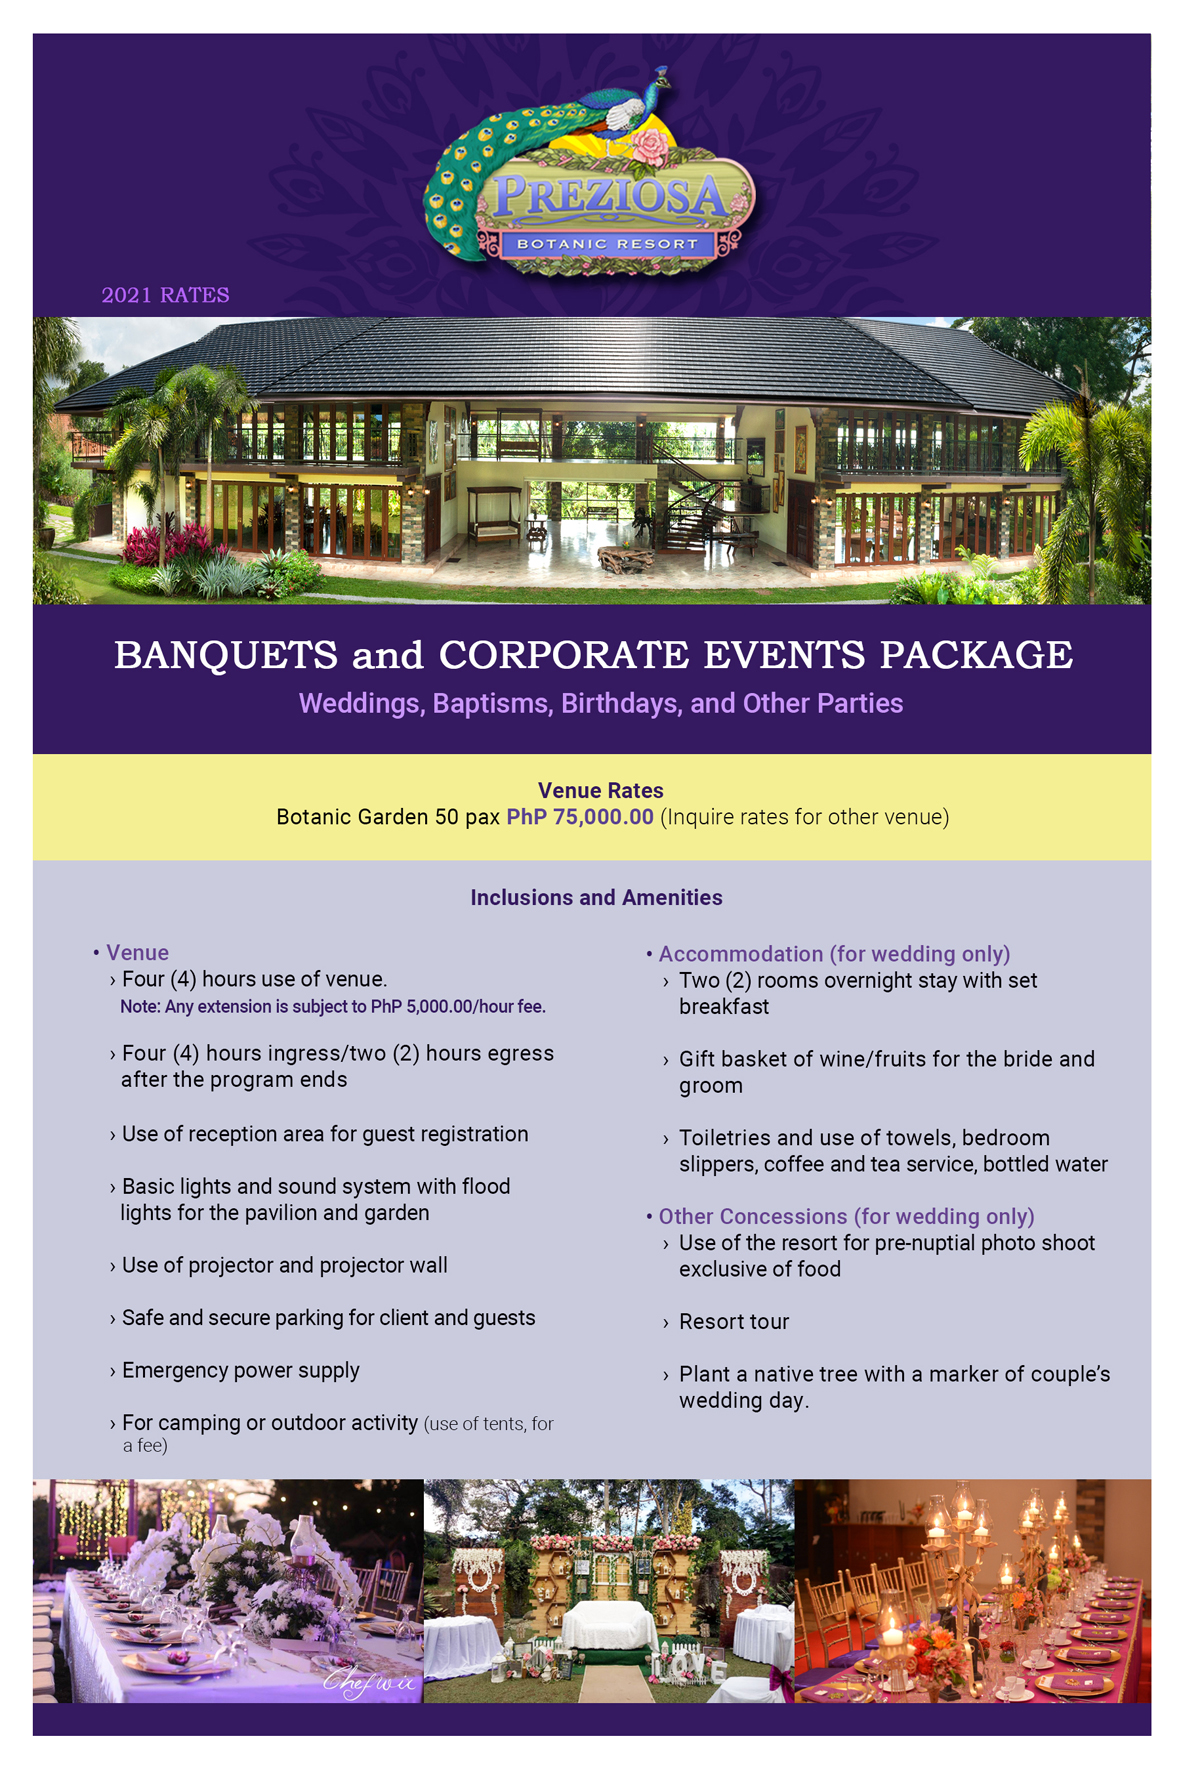 Banquets and Corporate Events 0520-21